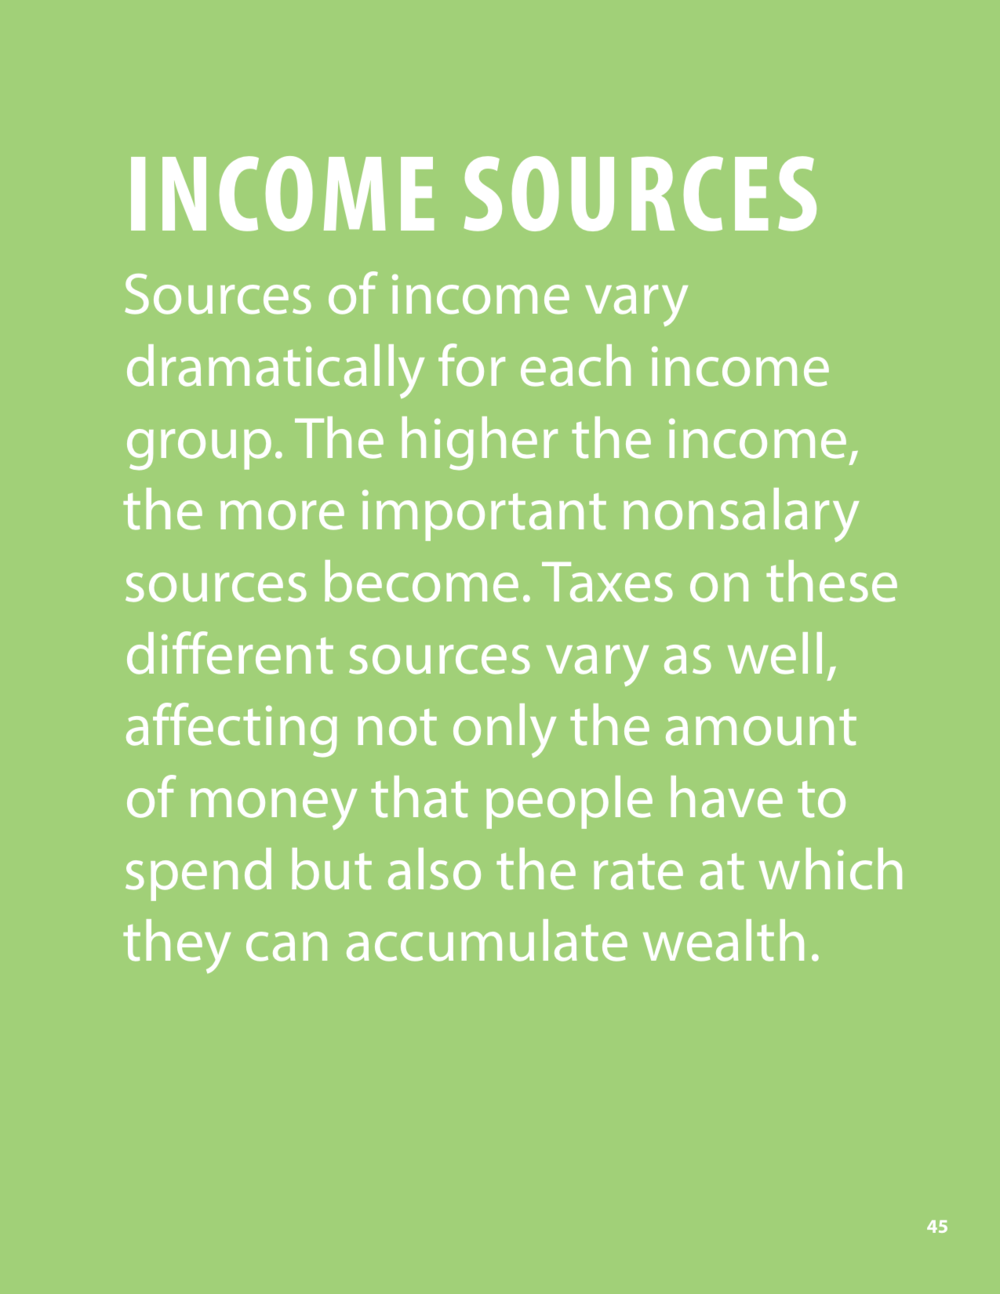 IncomeGuide_2013_Jan17_RGB_page 45_45.png